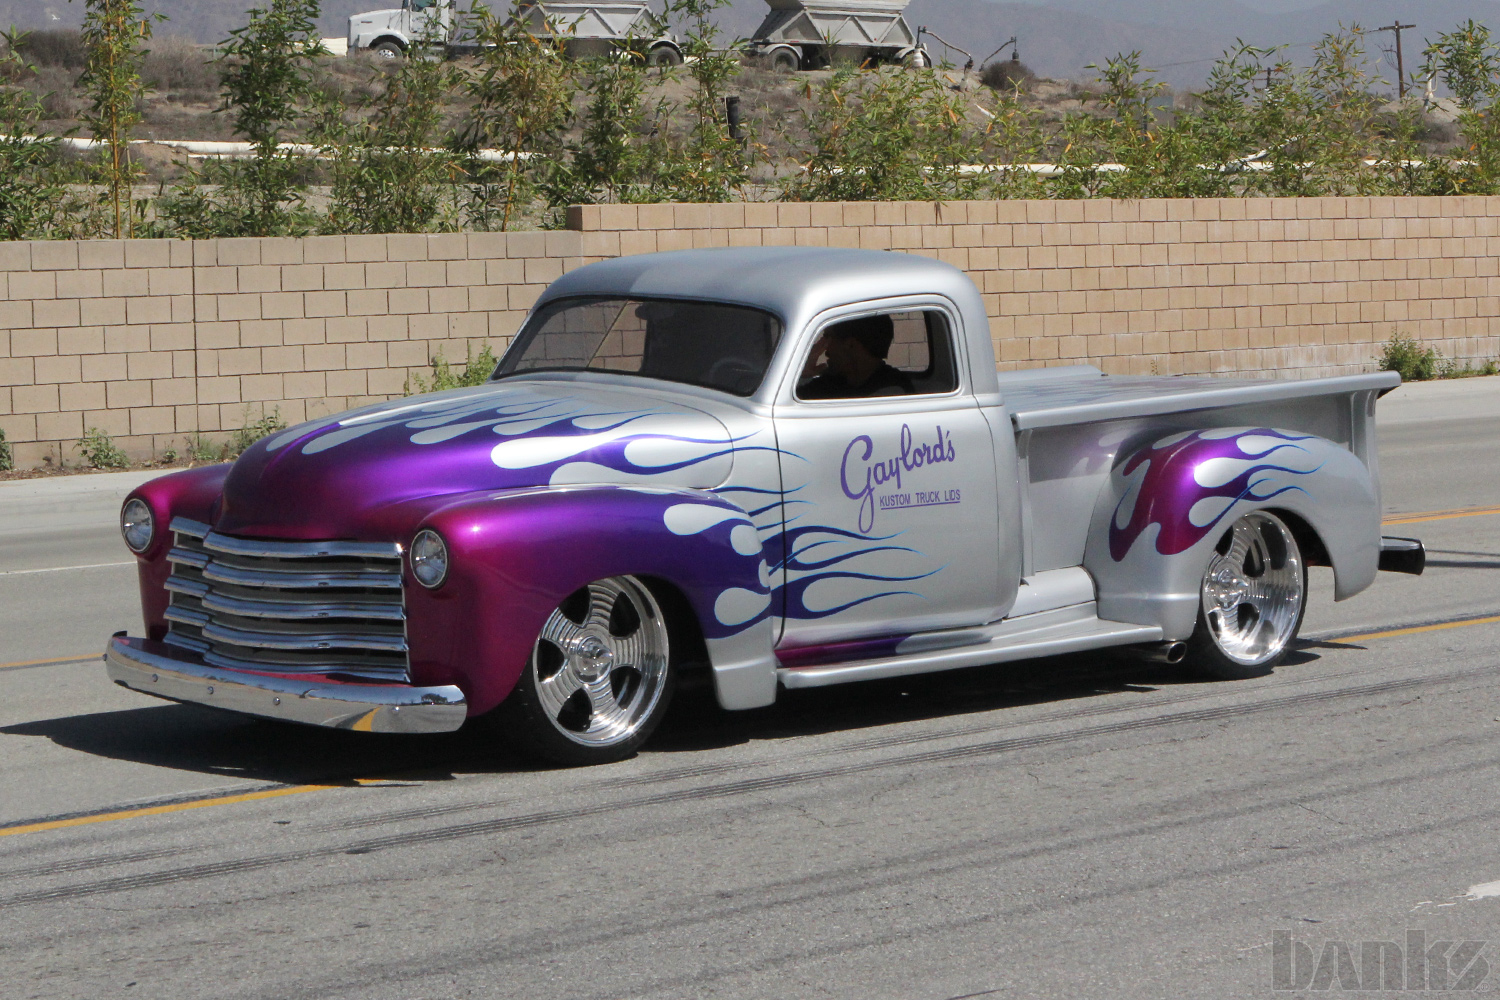 Banks twin-turbo Gaylord truck